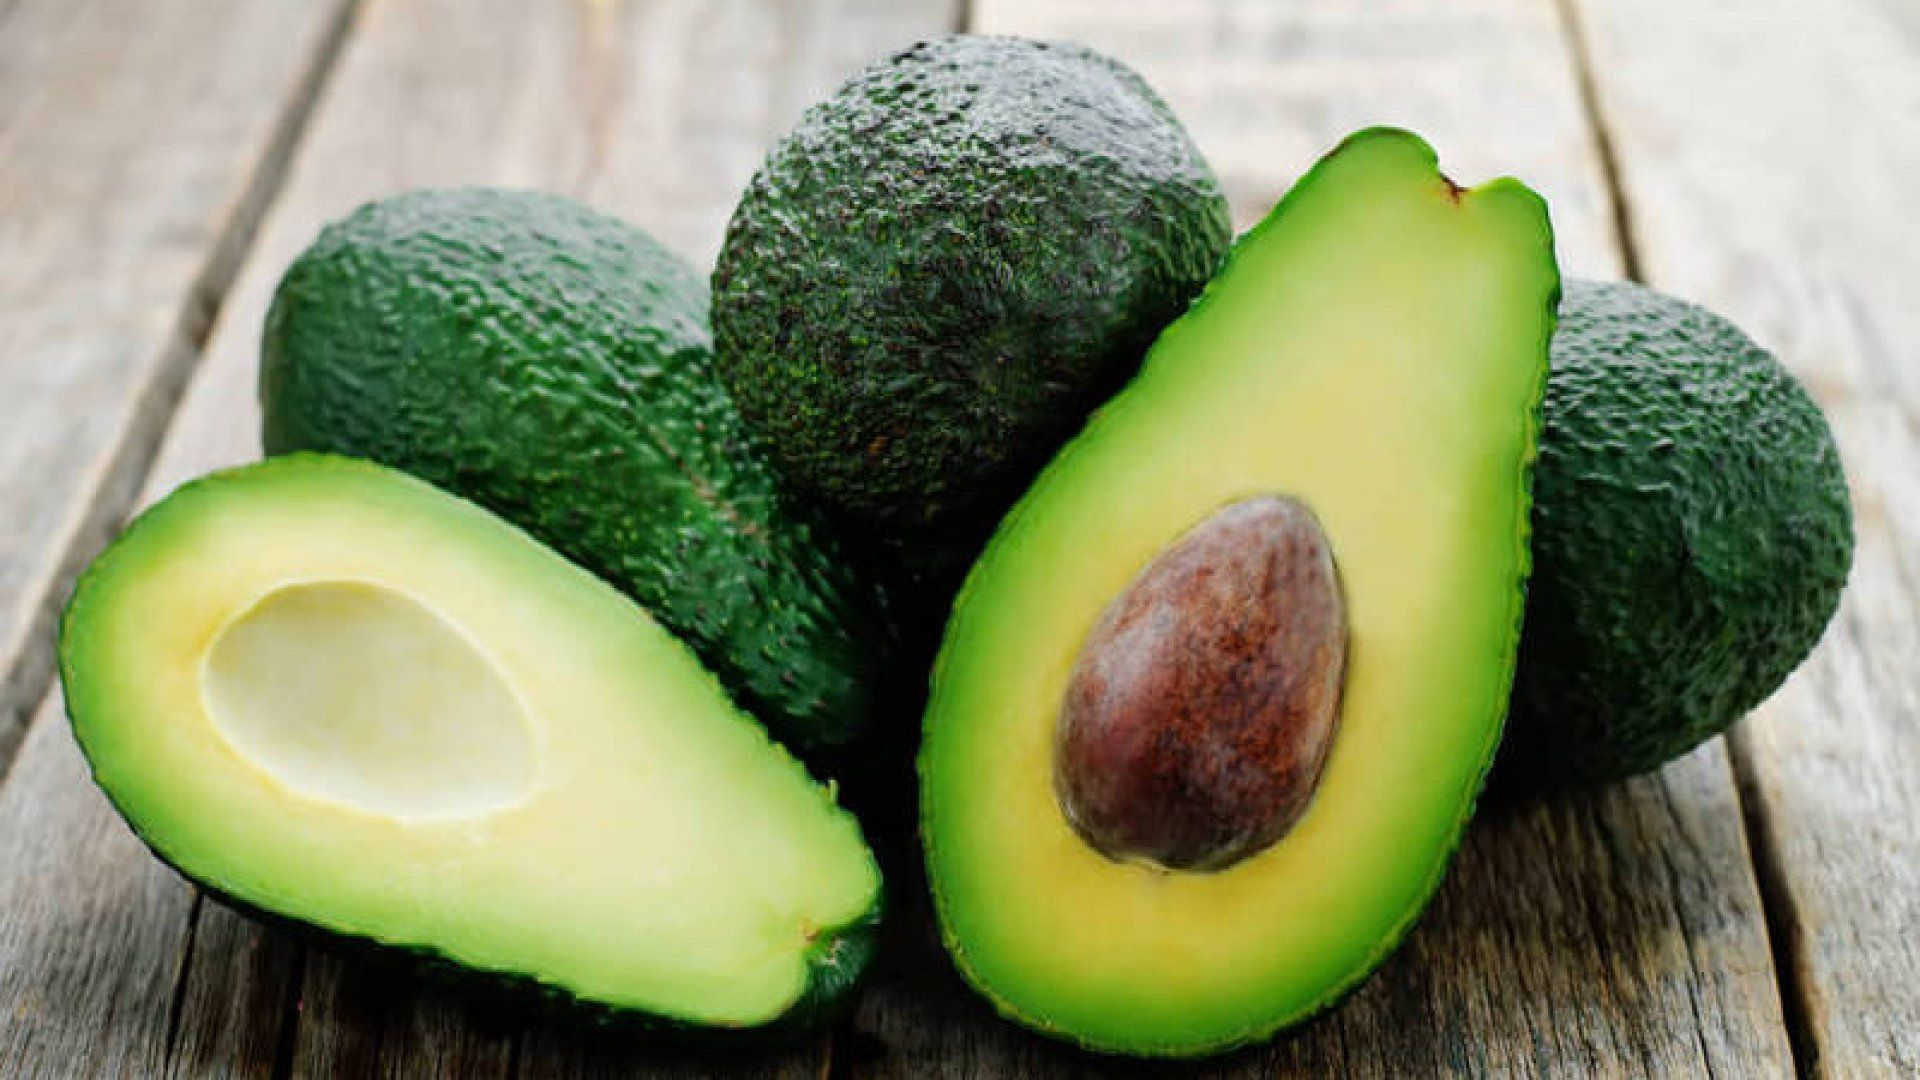 Avocado 1920x1080 wallpaper